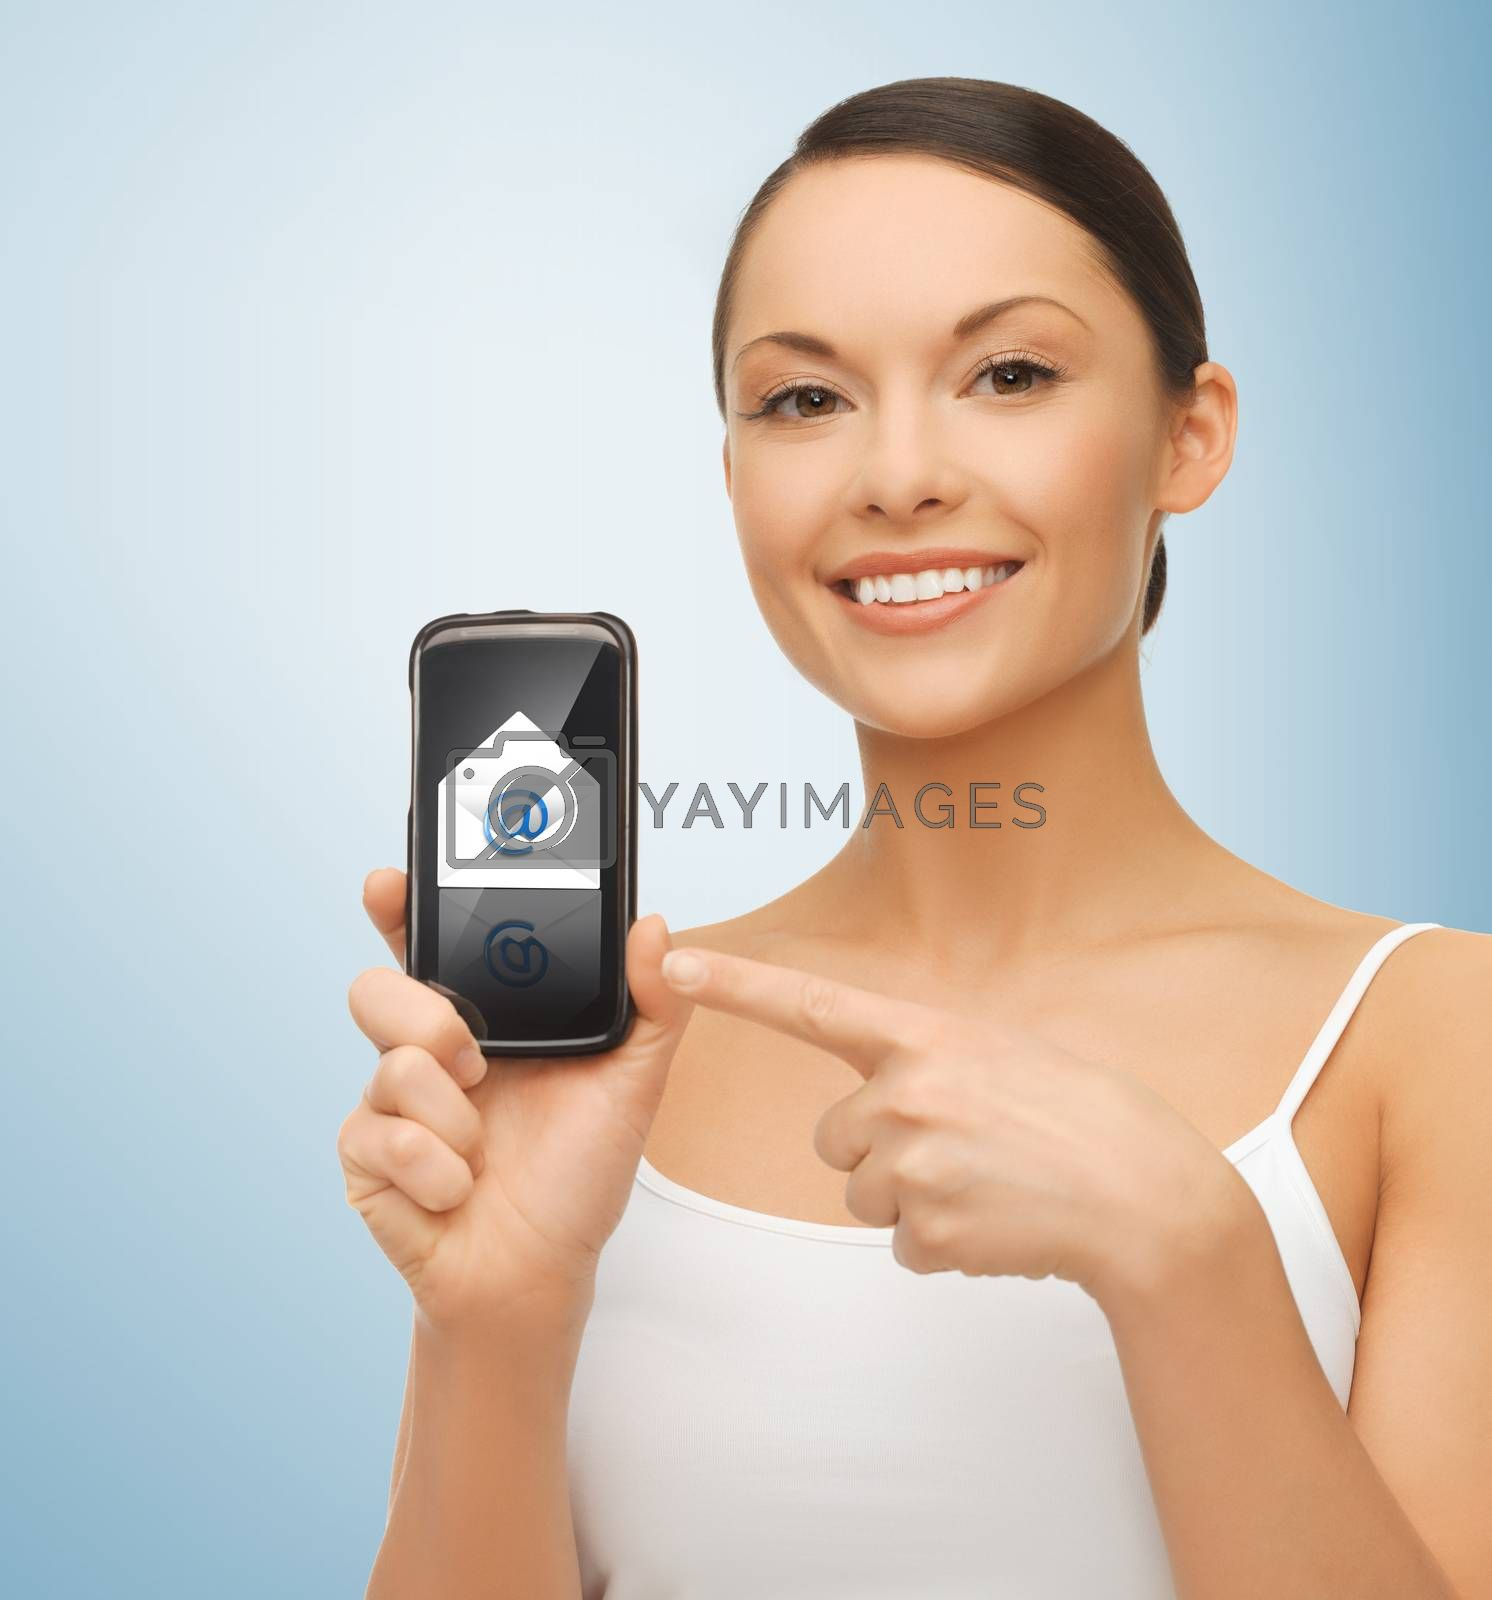 woman with smartphone and email icon by dolgachov